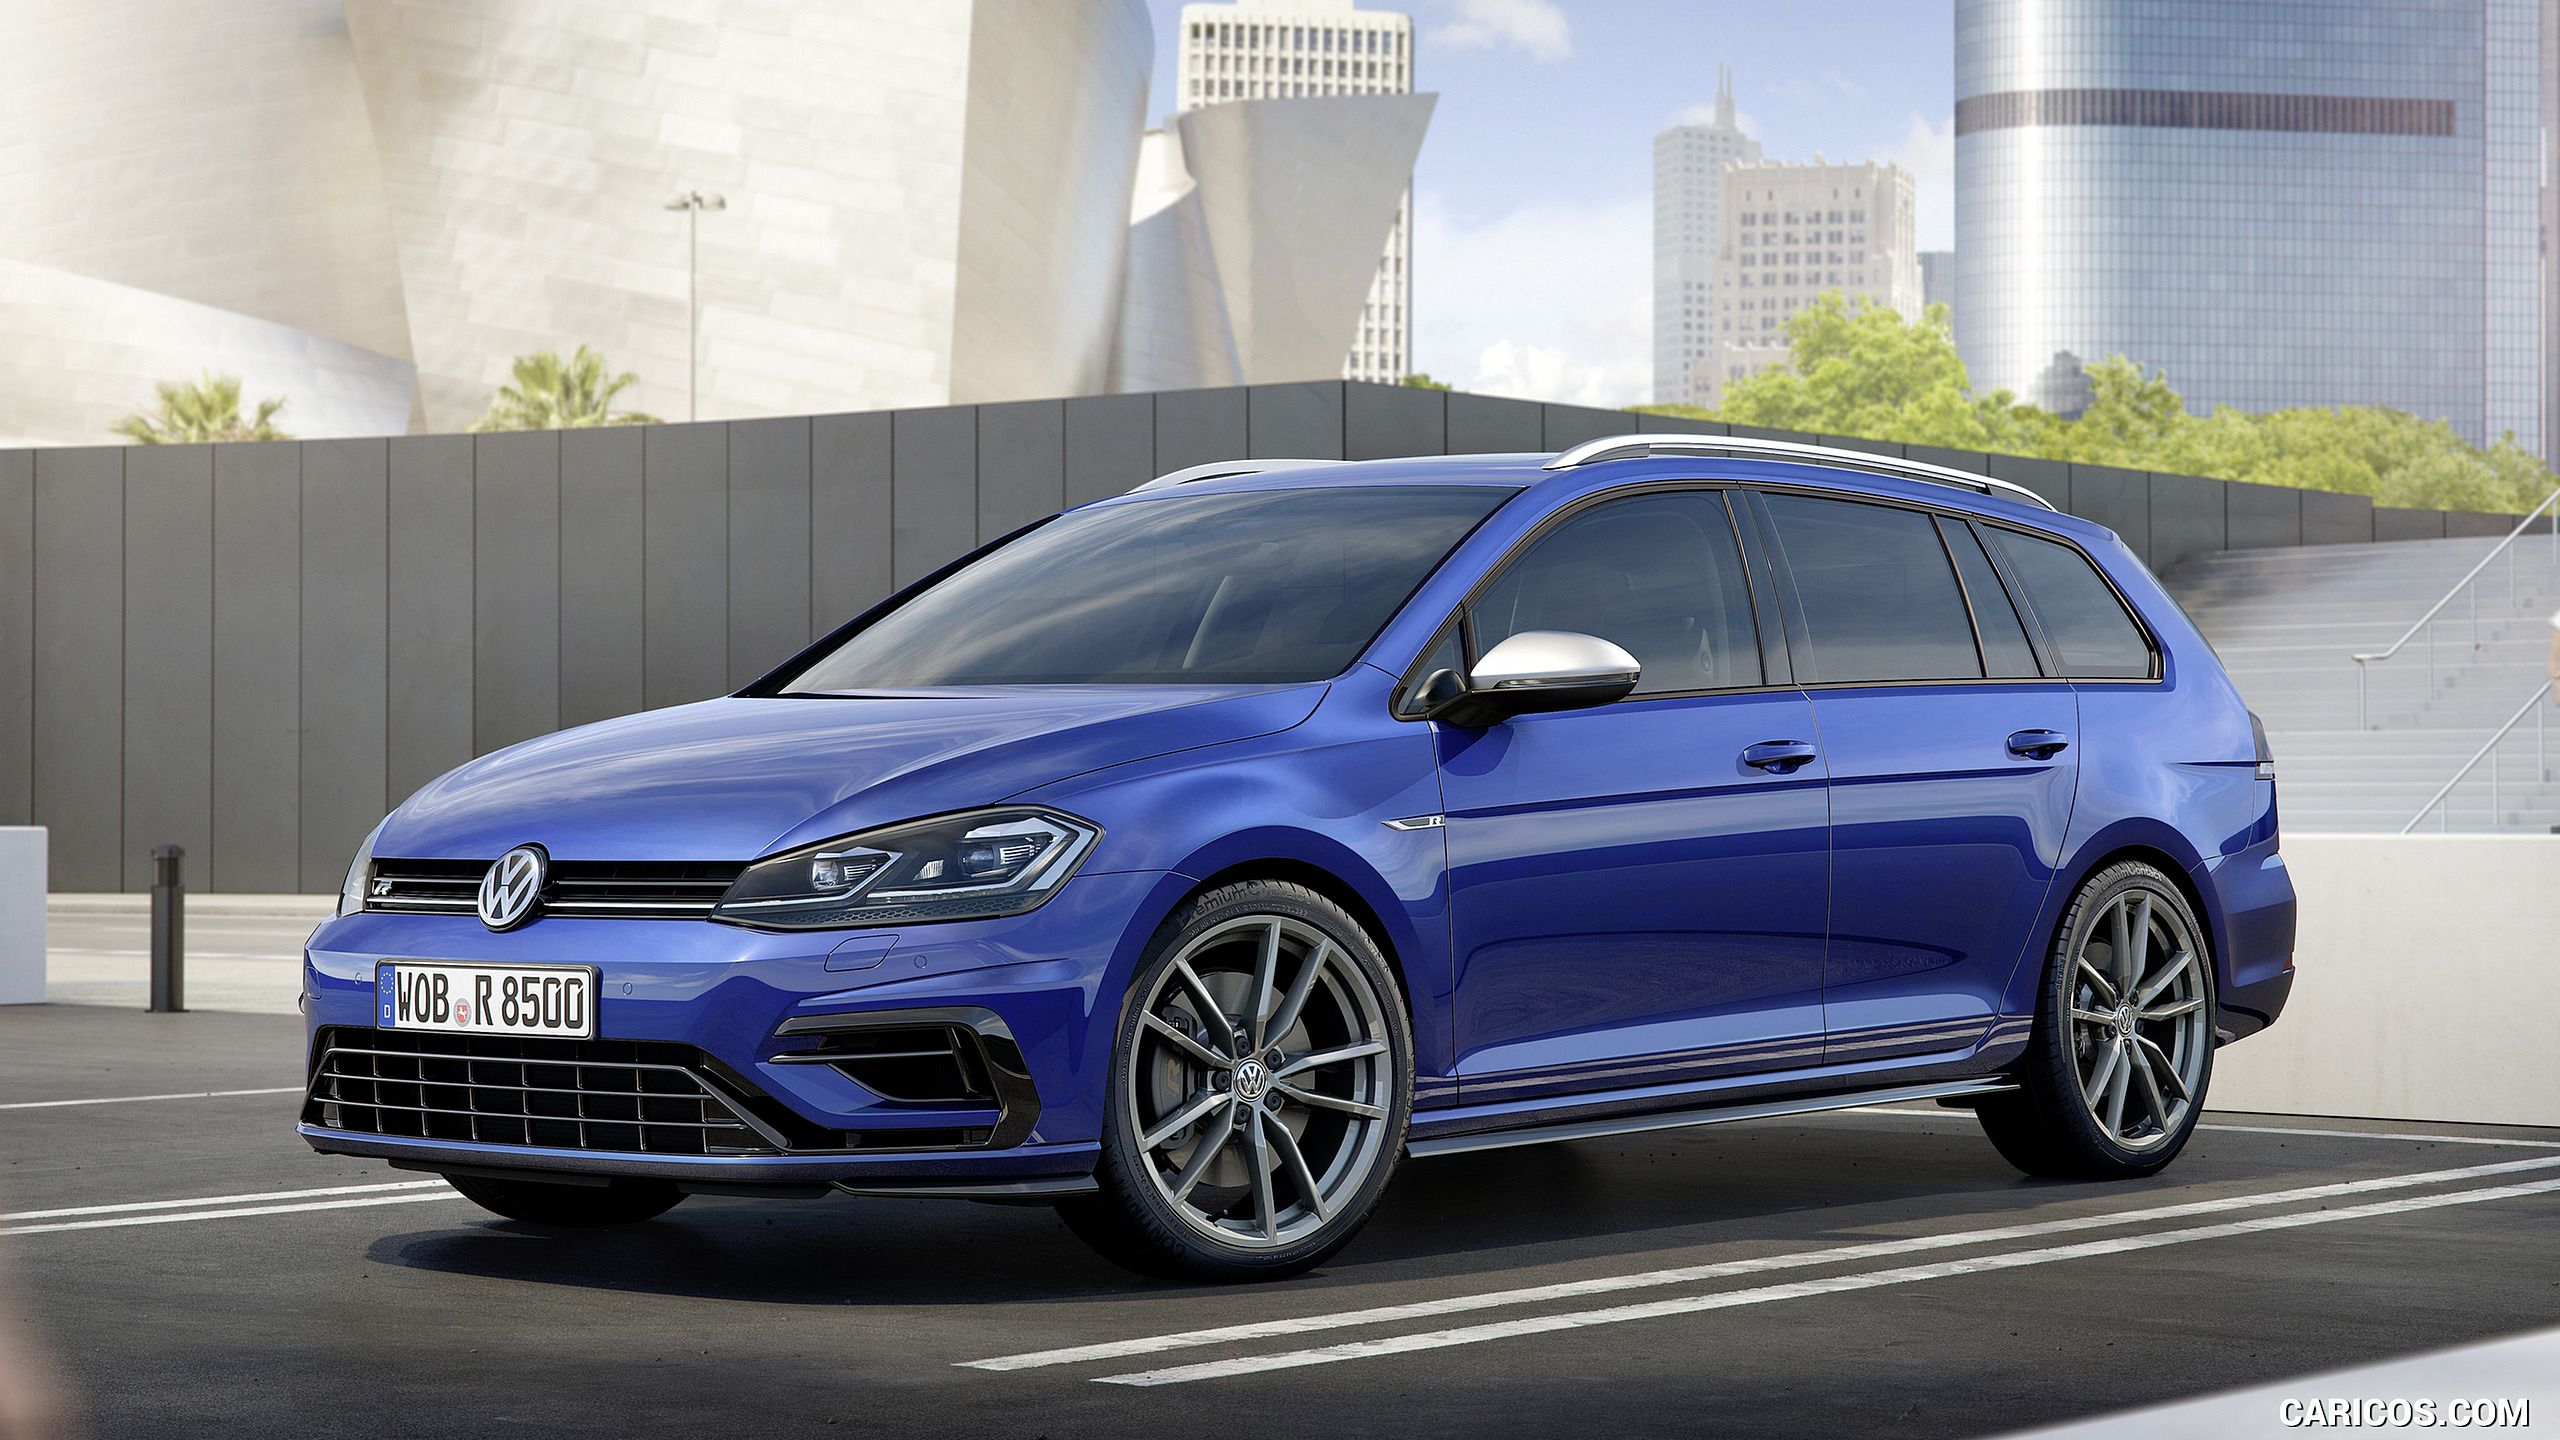 2017 Volkswagen Golf 7 Facelift Wallpaper